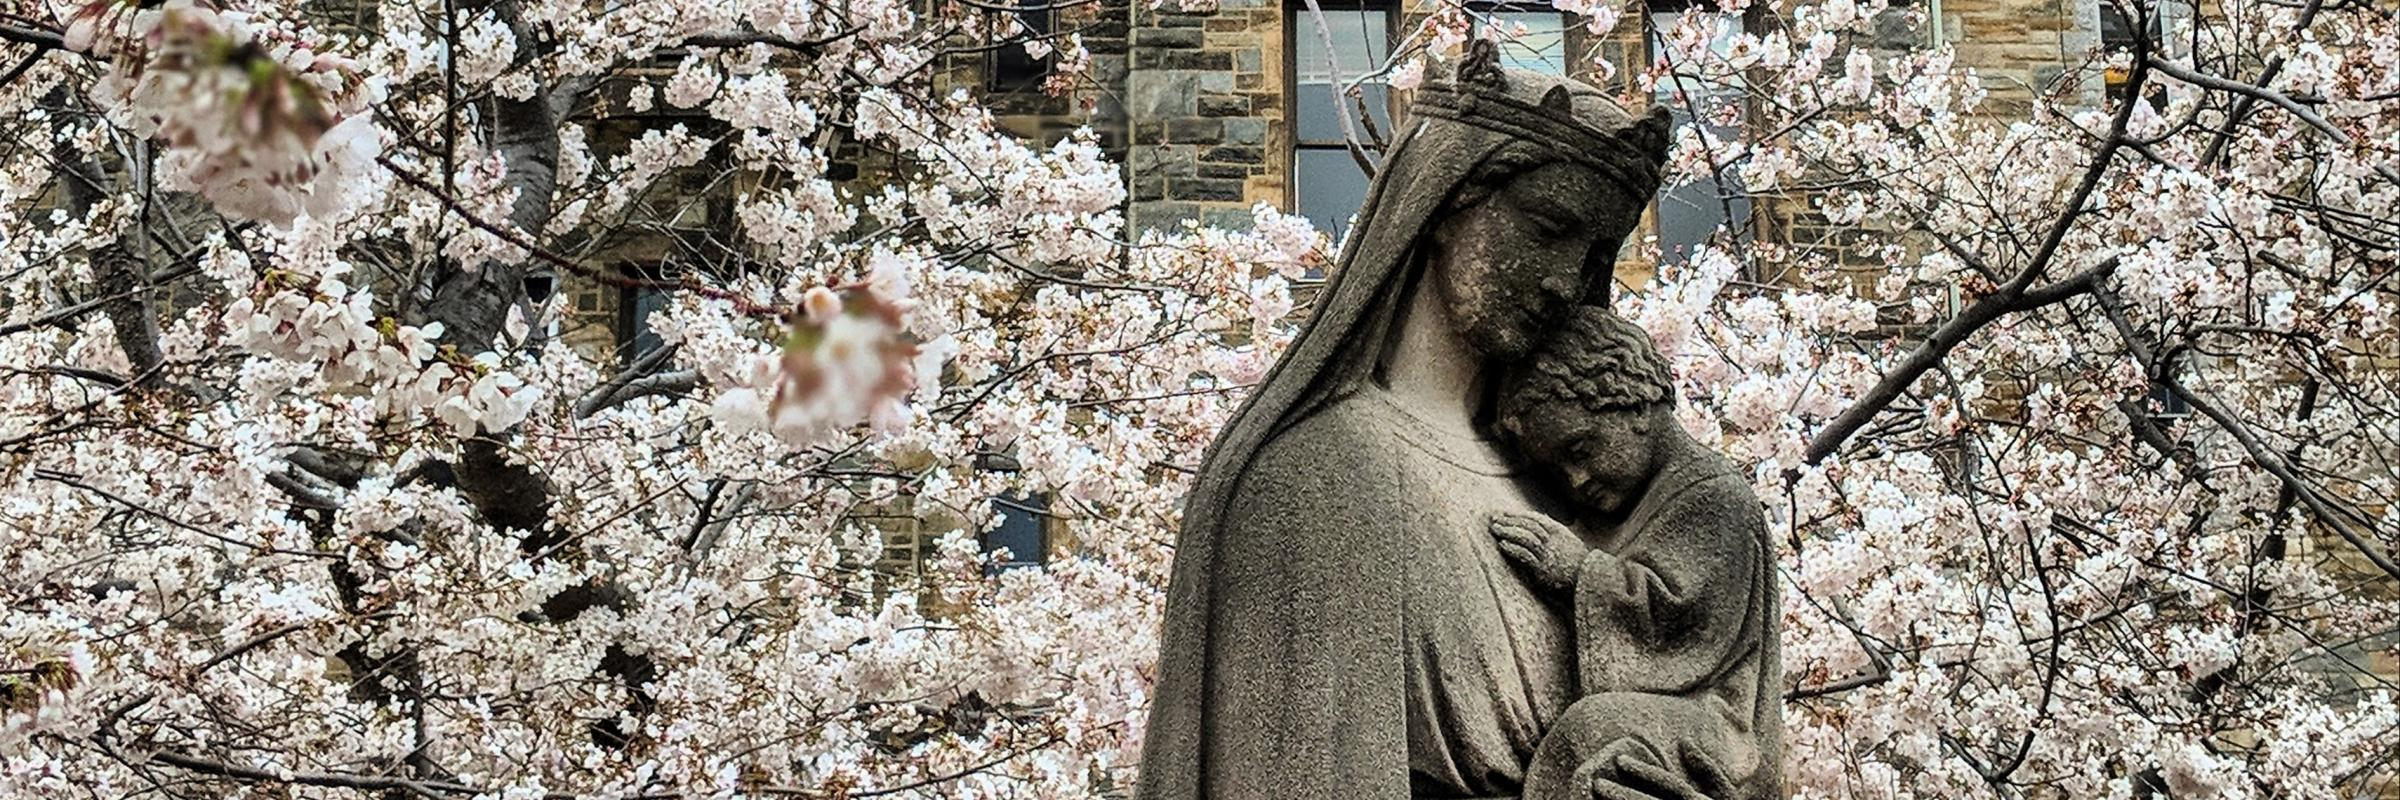 Statue of Blessed Mary and Christ Child surrounded by cherry blossoms